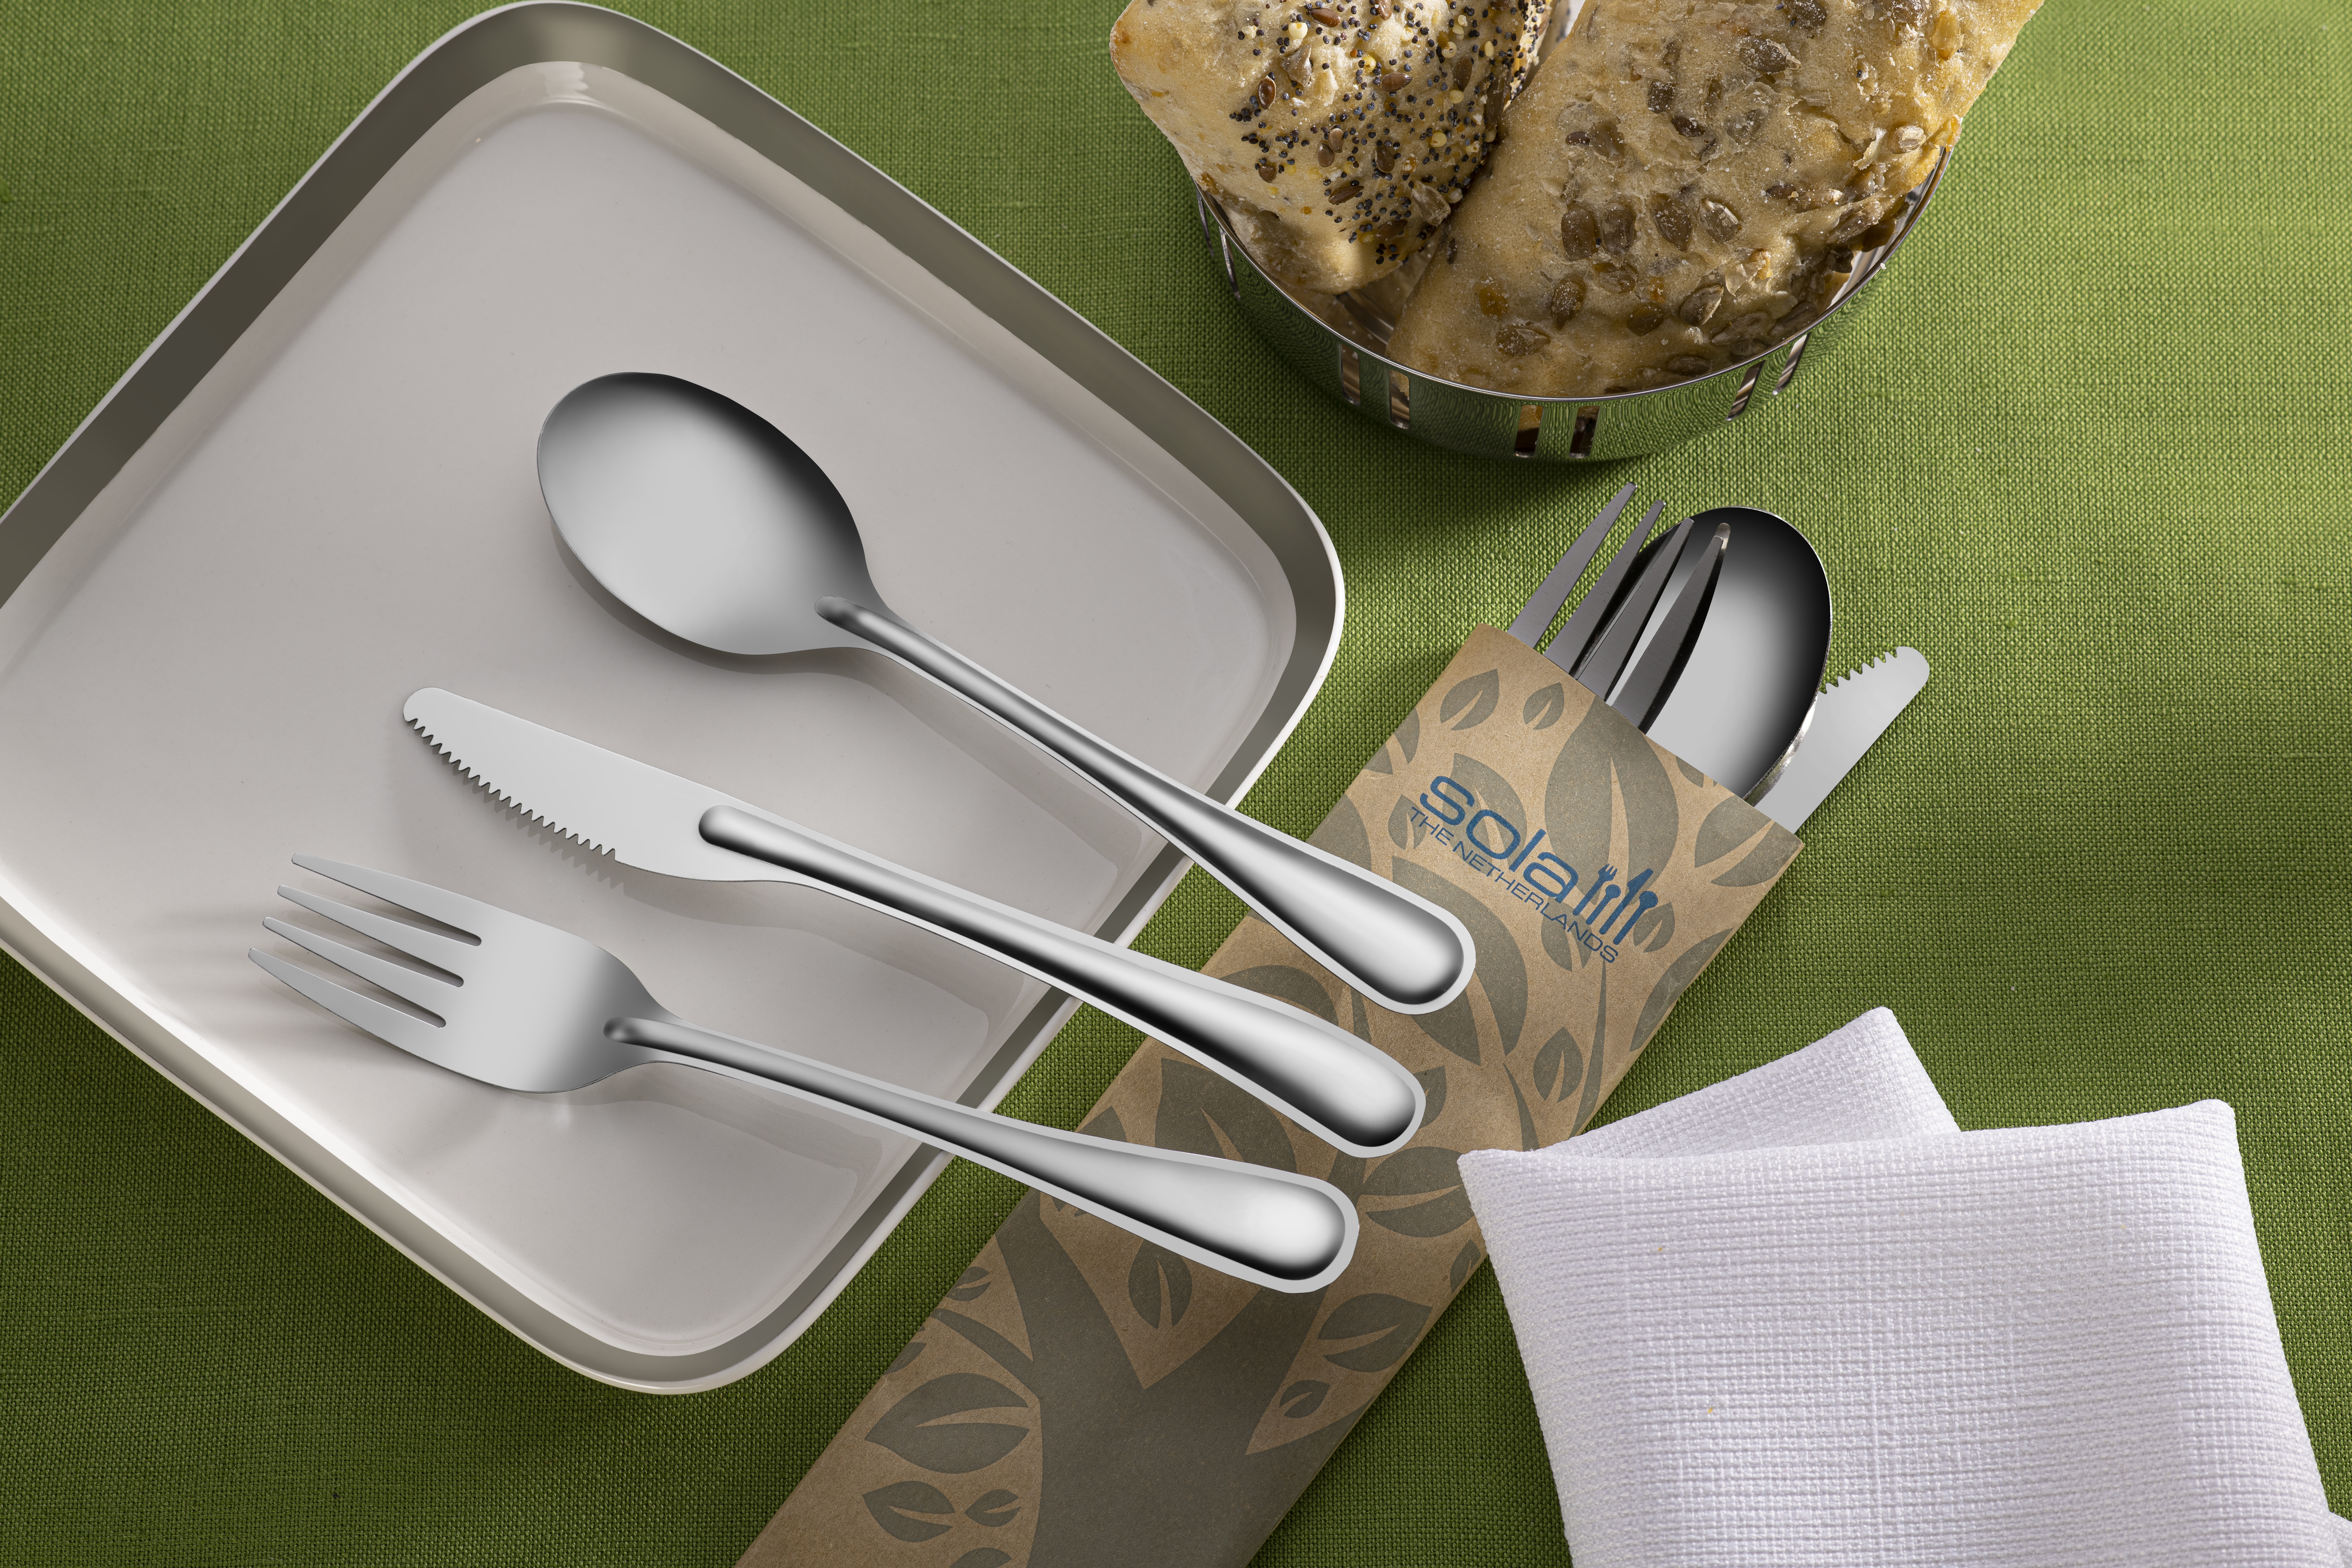 Replacement of plastic cutlery